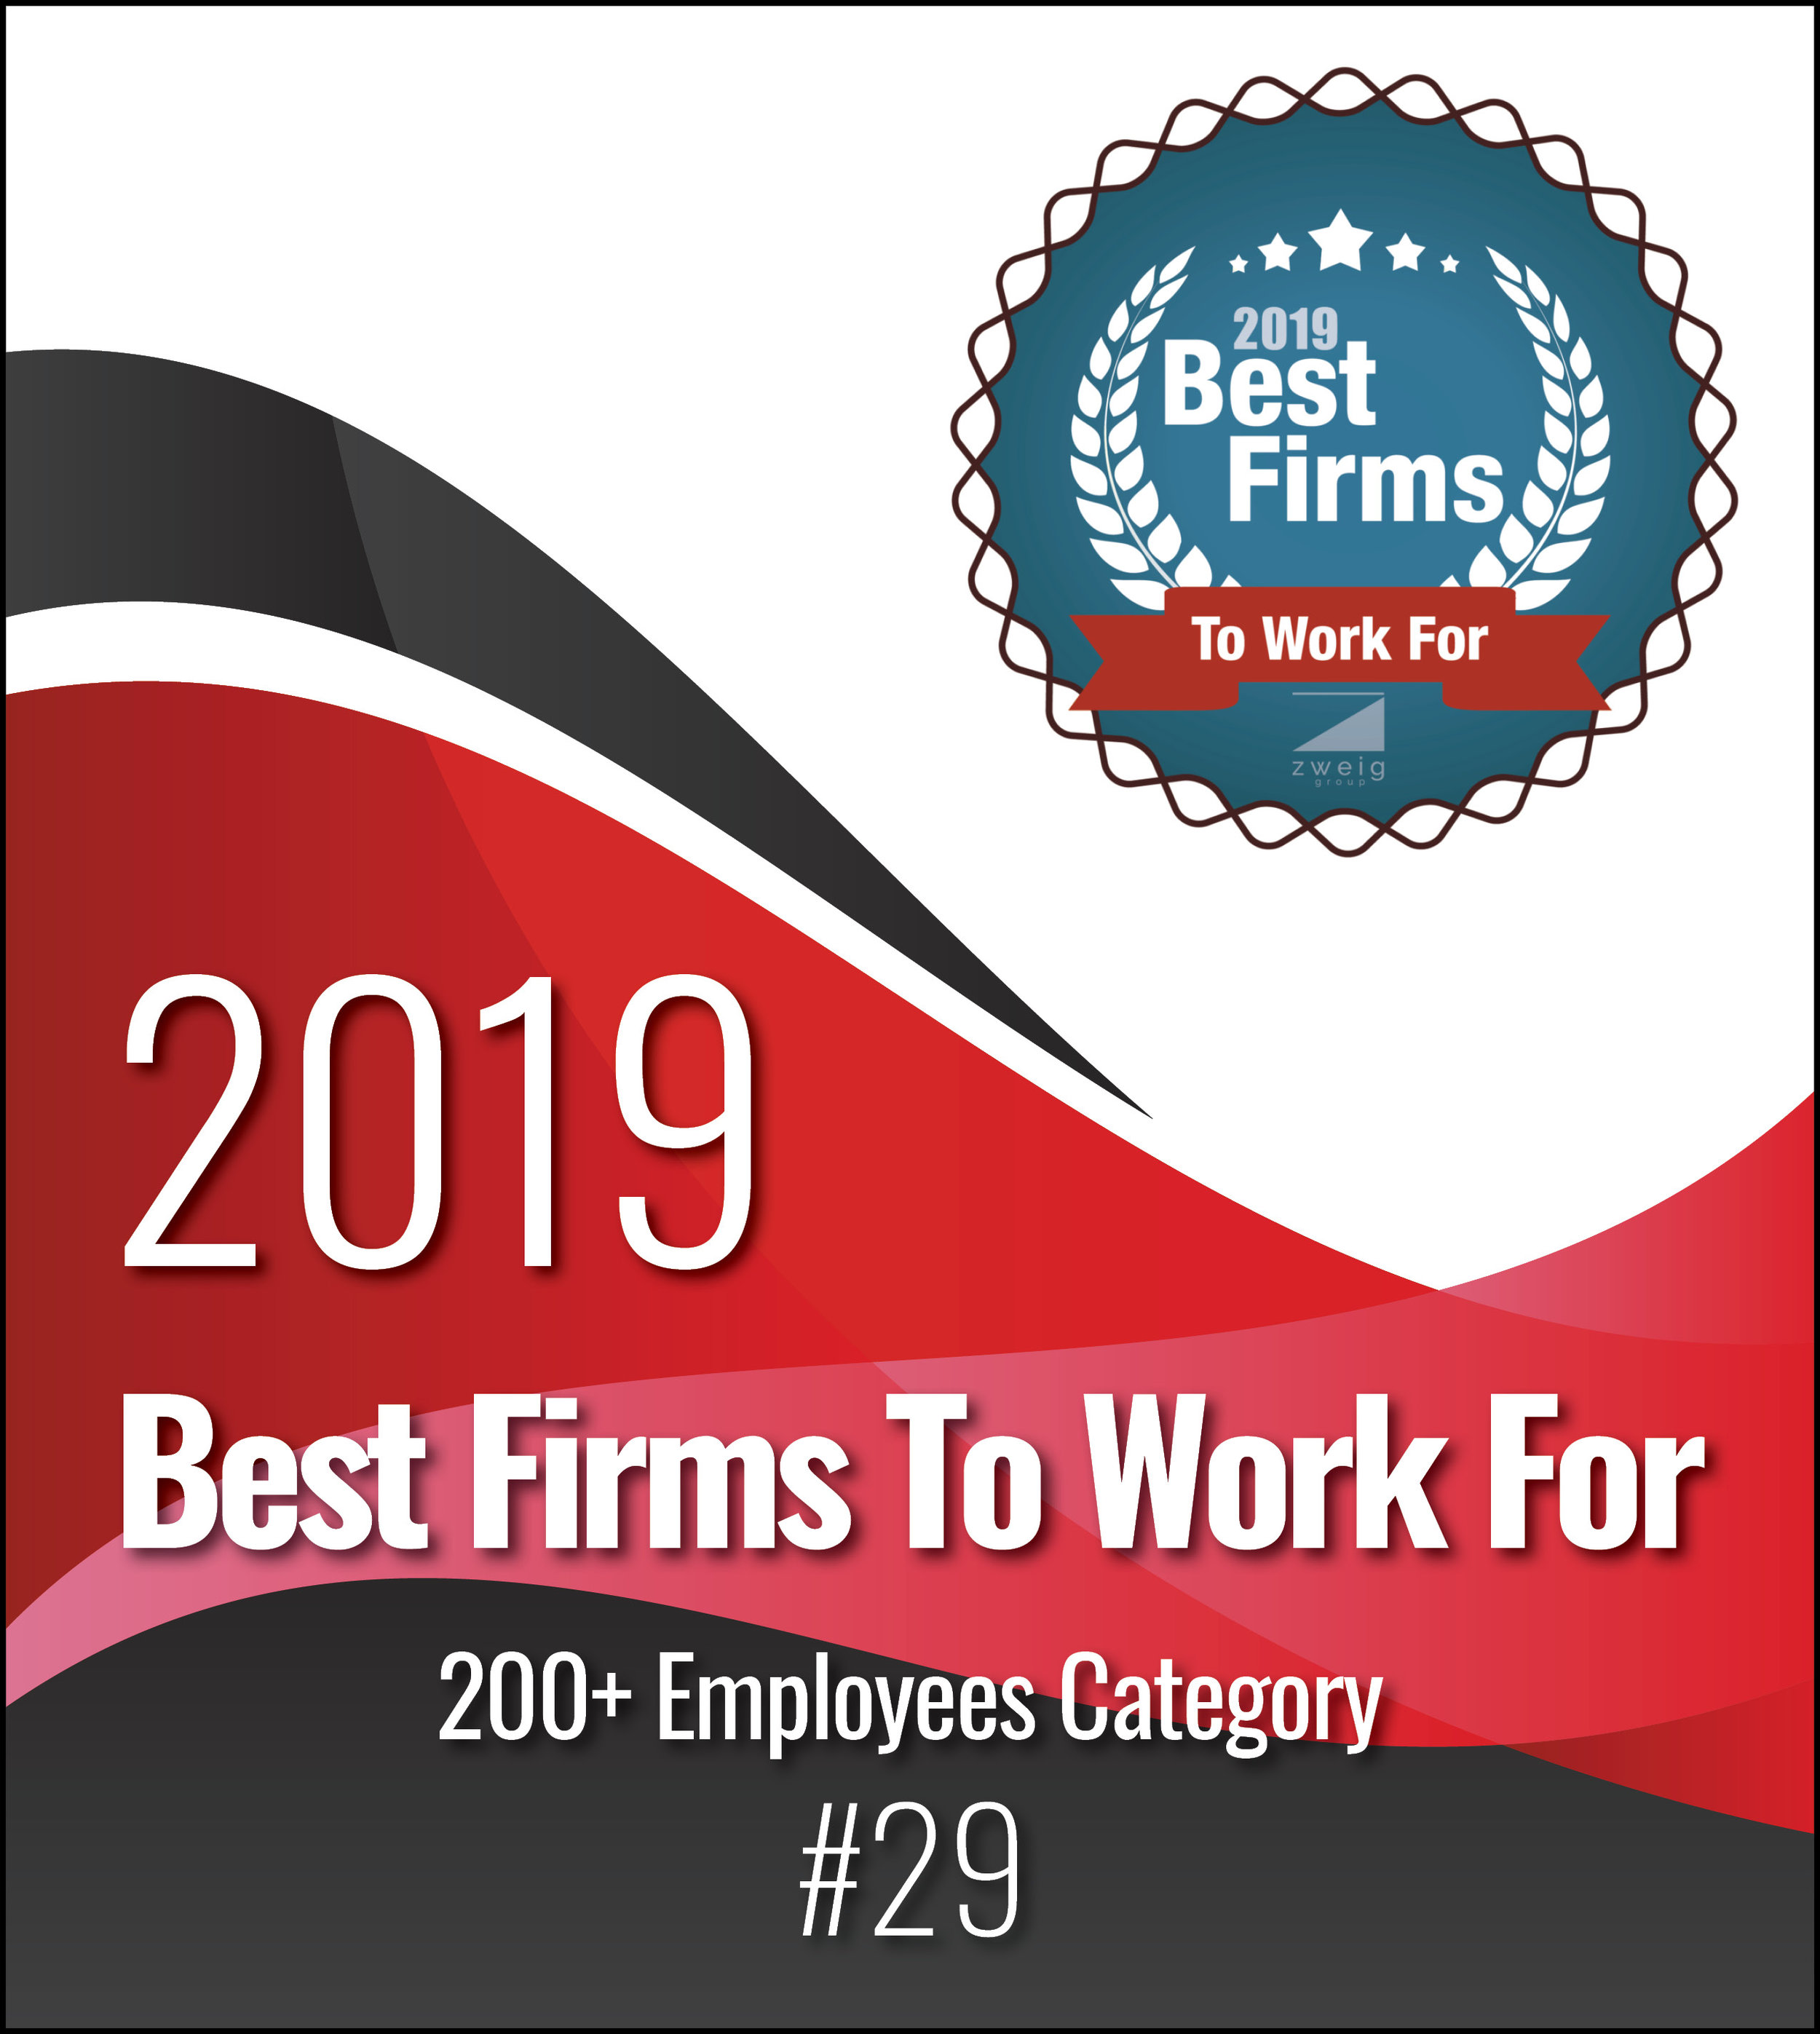 2019 Best Firms To Work For_200+.jpg